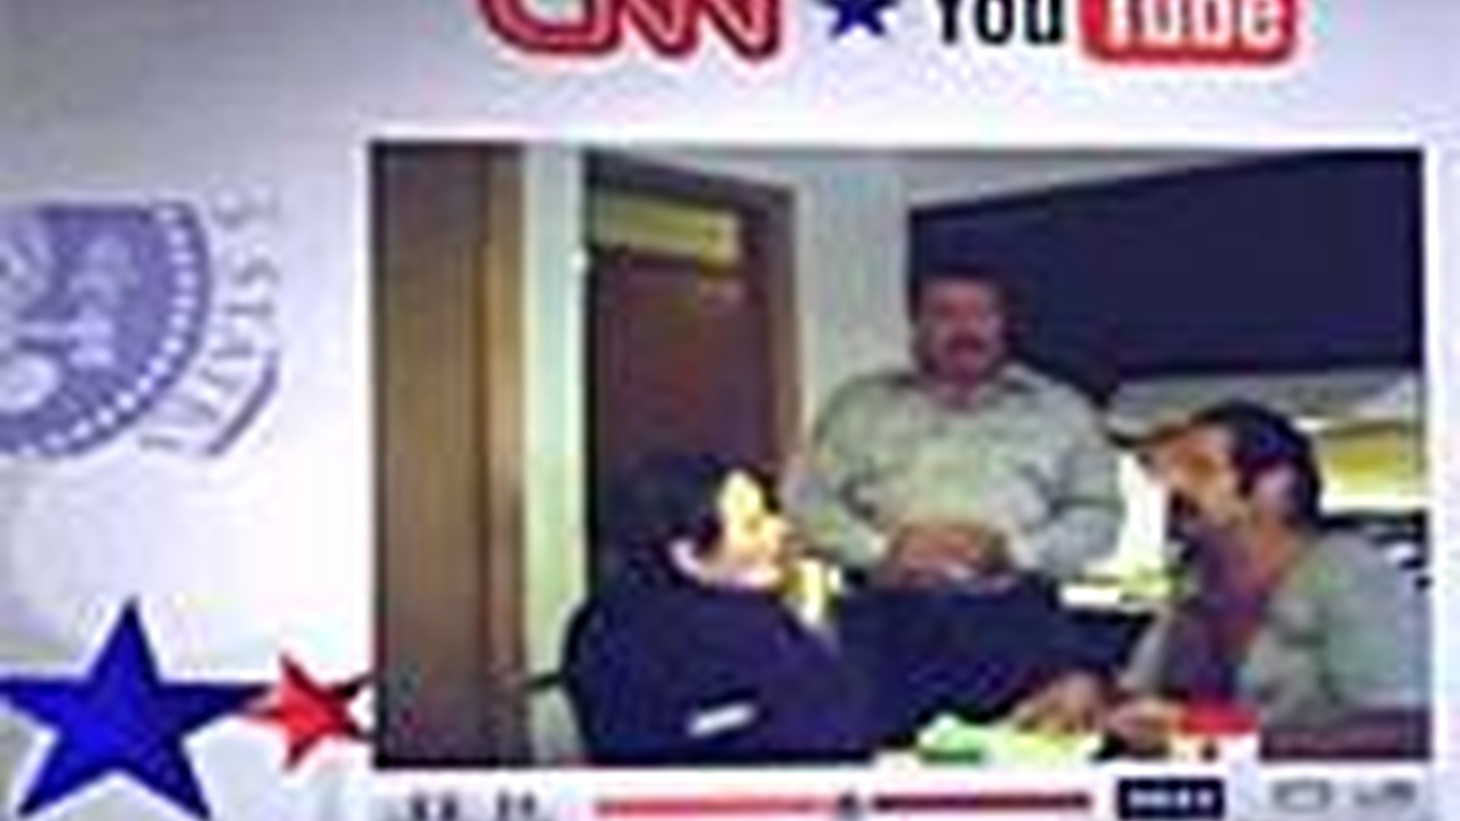 Democratic presidential candidates last night faced questions posed by ordinary citizens on amateur video. CNN promoted it as the beginning of real change in the style and substance of American politics. Also, round two of US-Iran talks on Iraq, and Commissioner David Stern on charges that a referee bet on professional basketball.